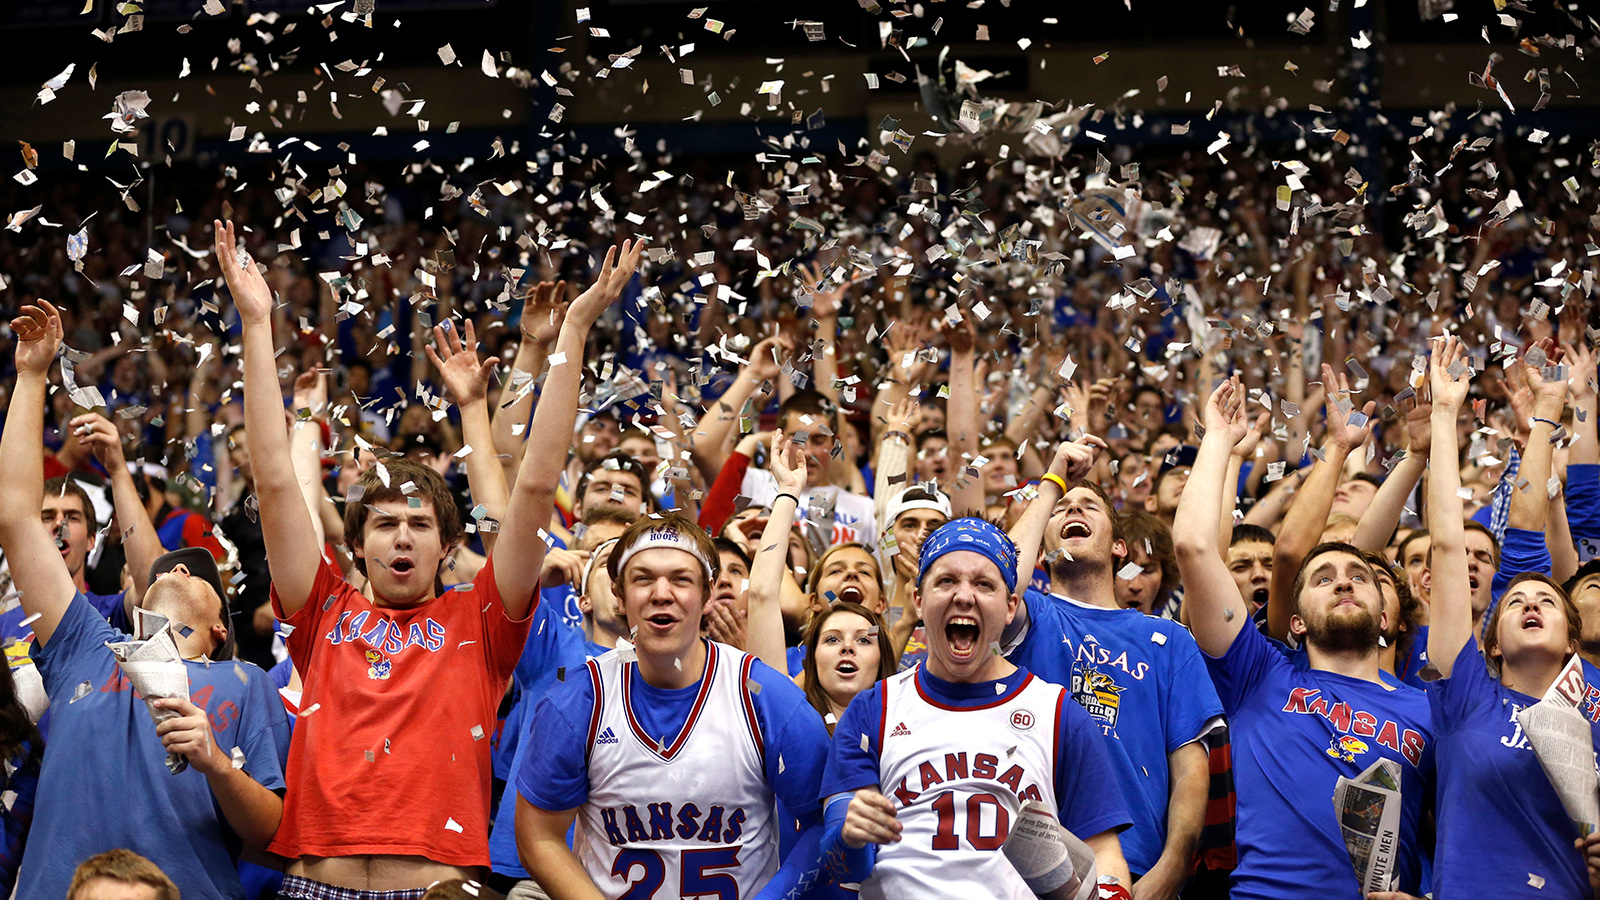 fans sports basketball college nba fan ncaa kansas court audiences ku nfl madness camping storming march stadium rules gravy announces